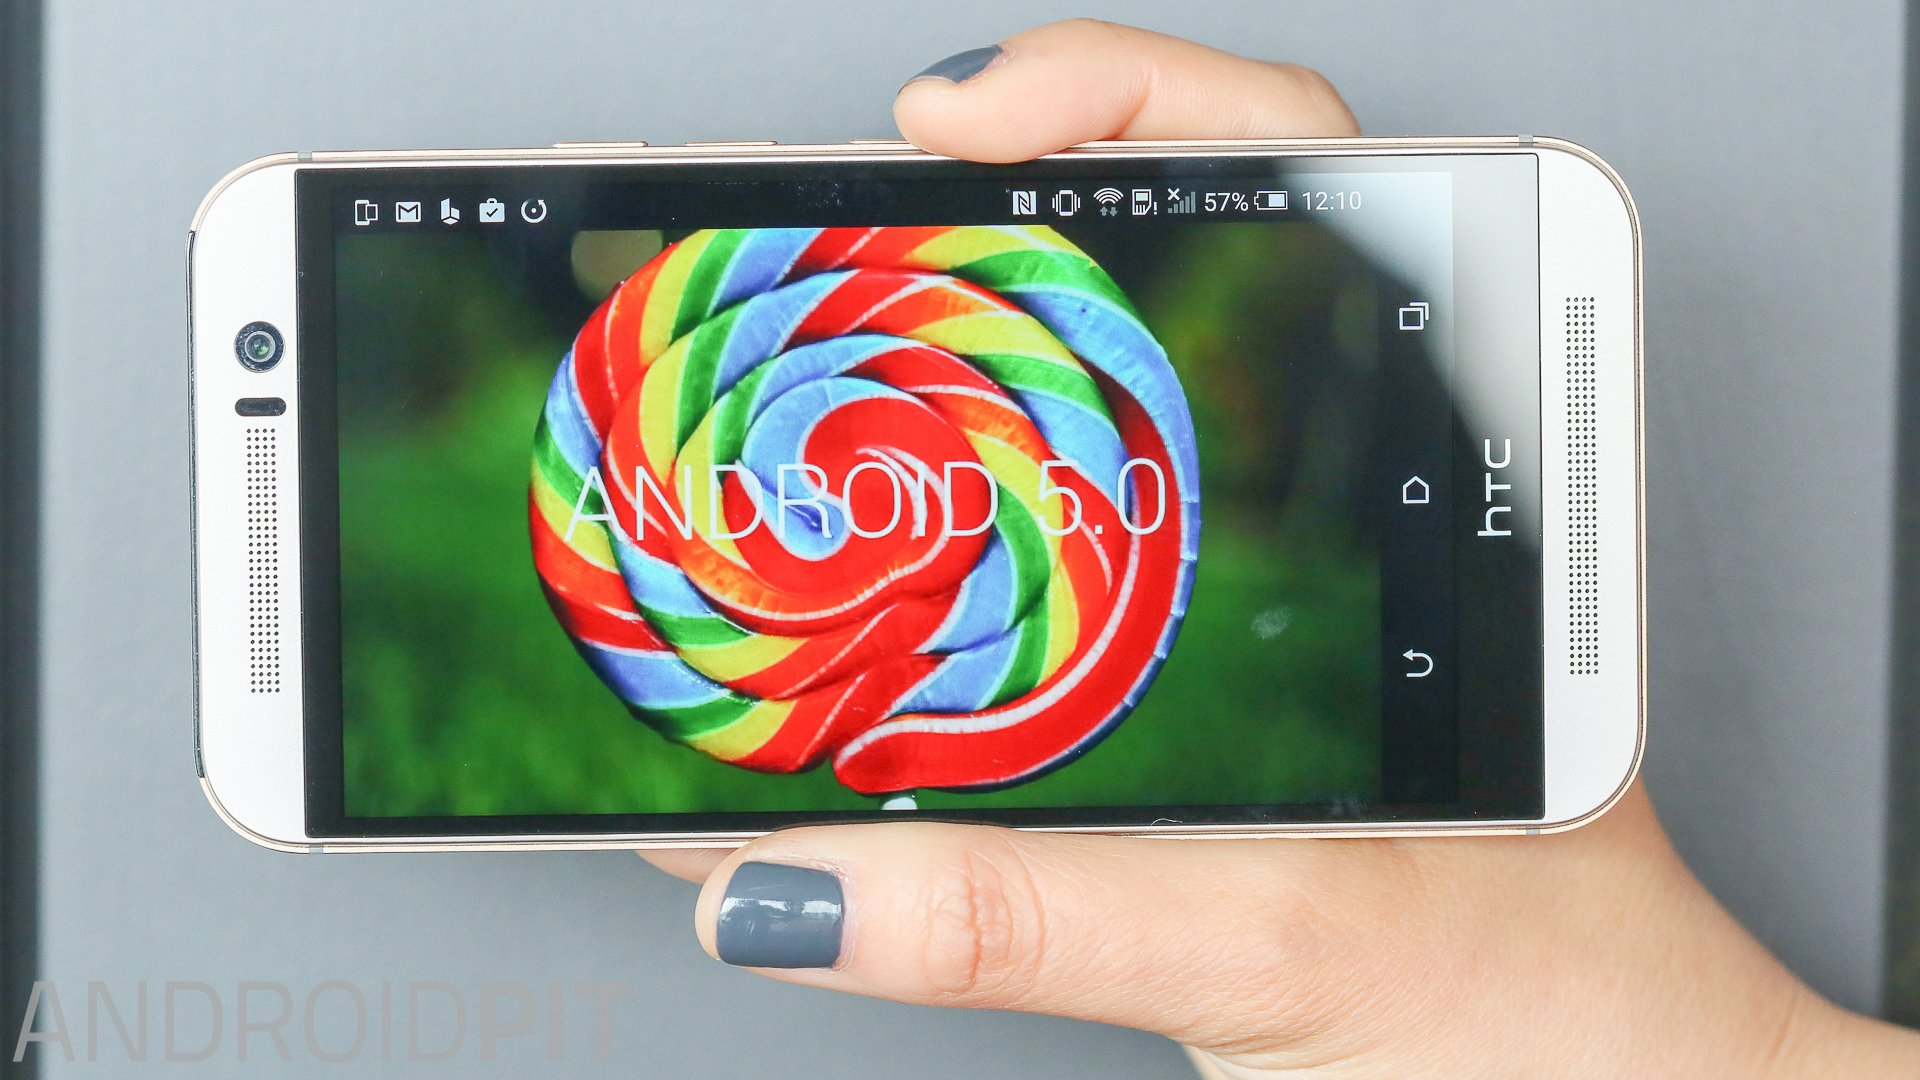 The Android 5 0 Lollipop features Google stole from someone else